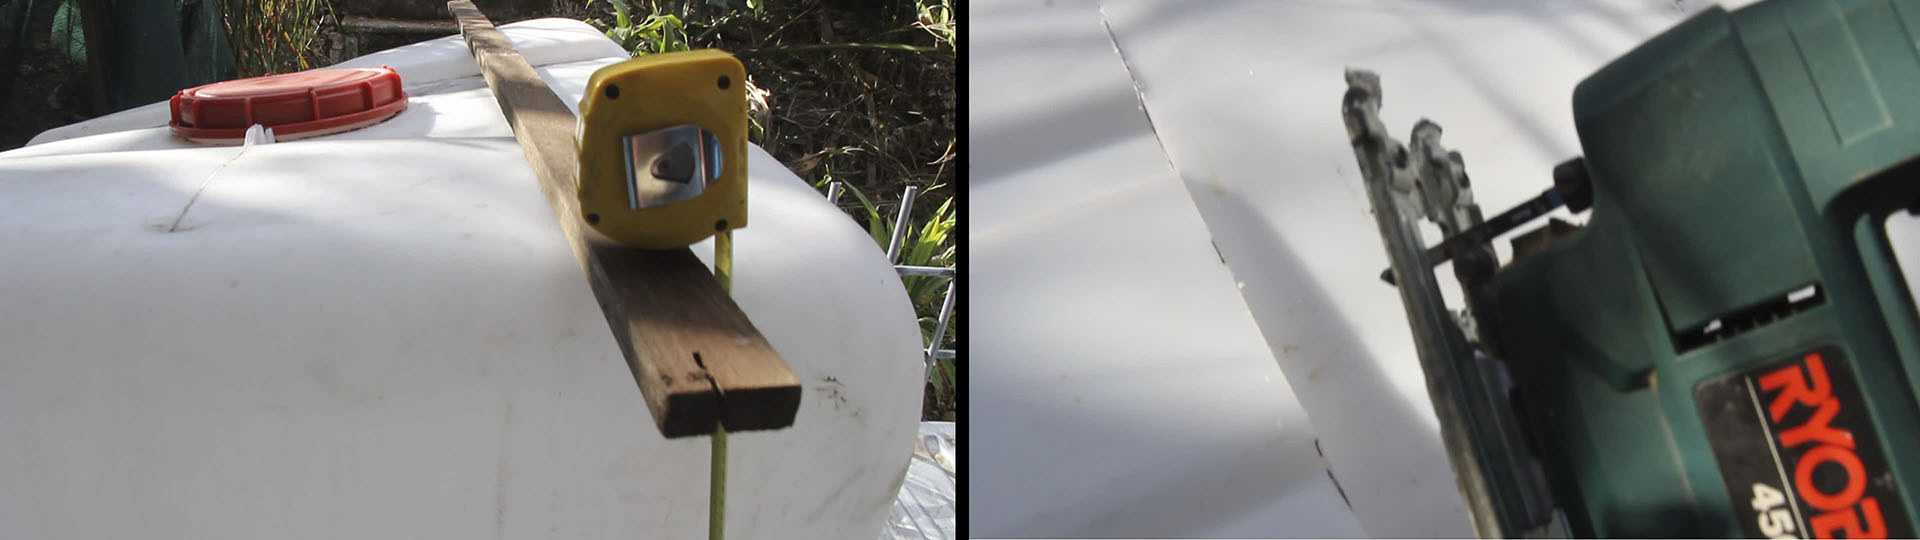 How To Build A Wicking Garden Bed using an IBC / Tote